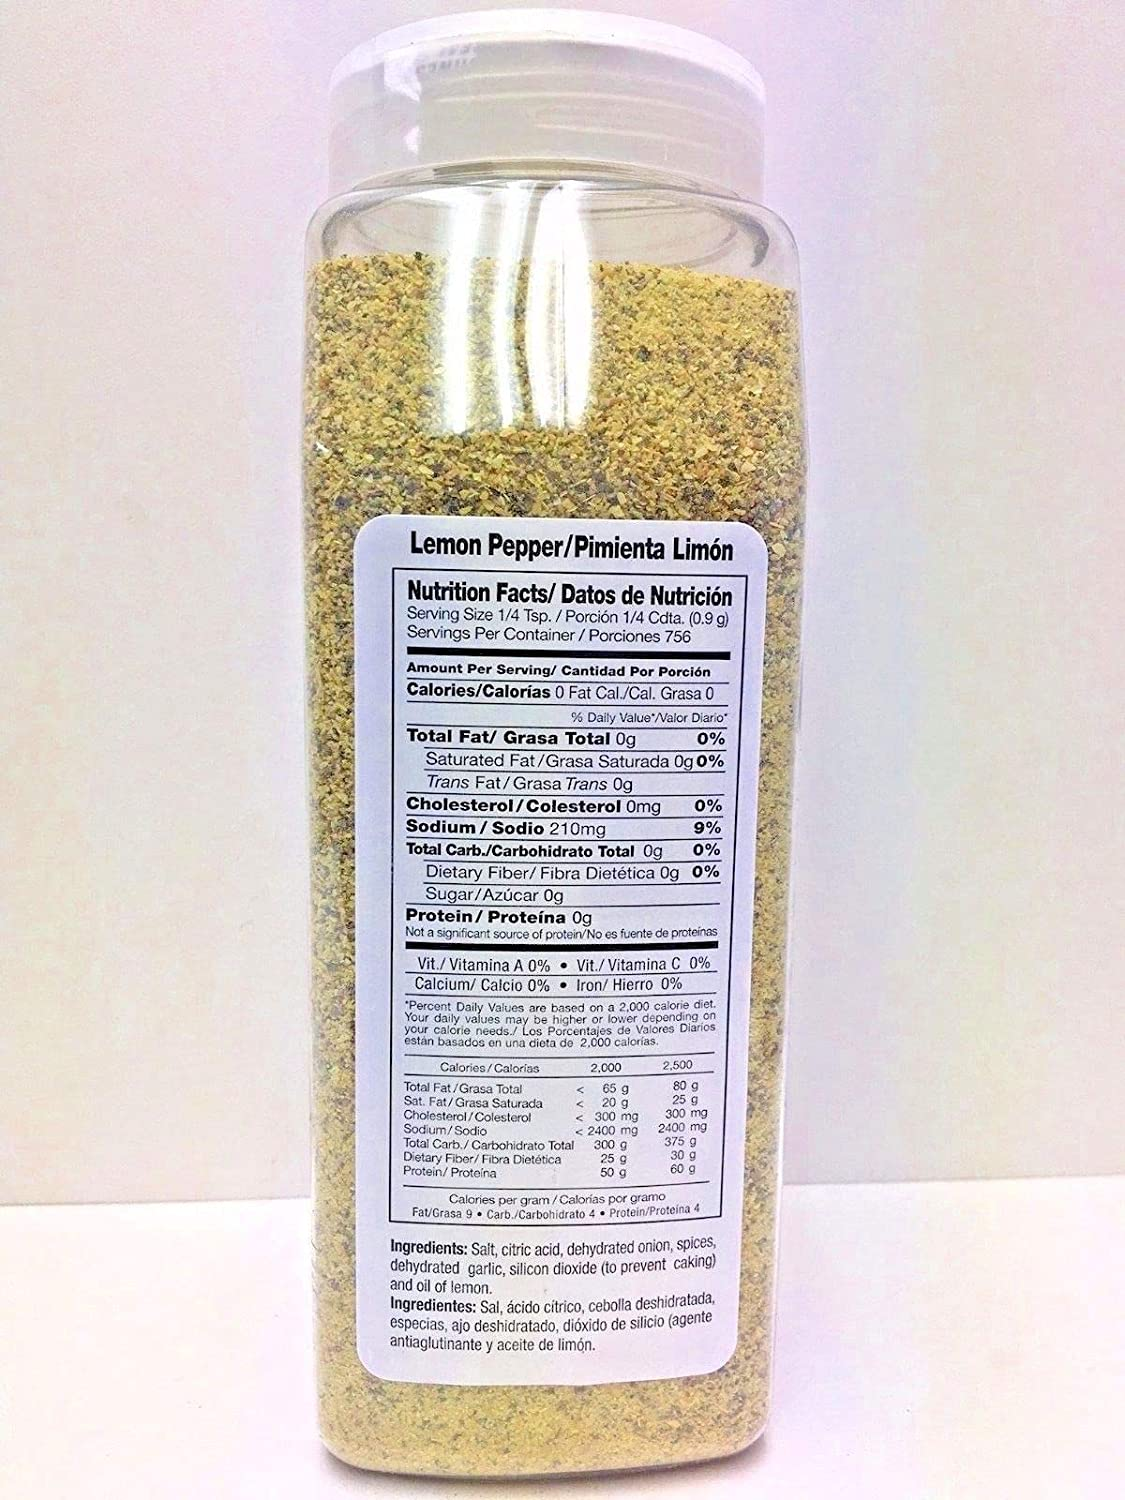 Amazon.com : 1.5 lbs-Lemon Pepper Seasoning/Sazon Pimienta Limon Gluten Free Kosher : Grocery & Gourmet Food